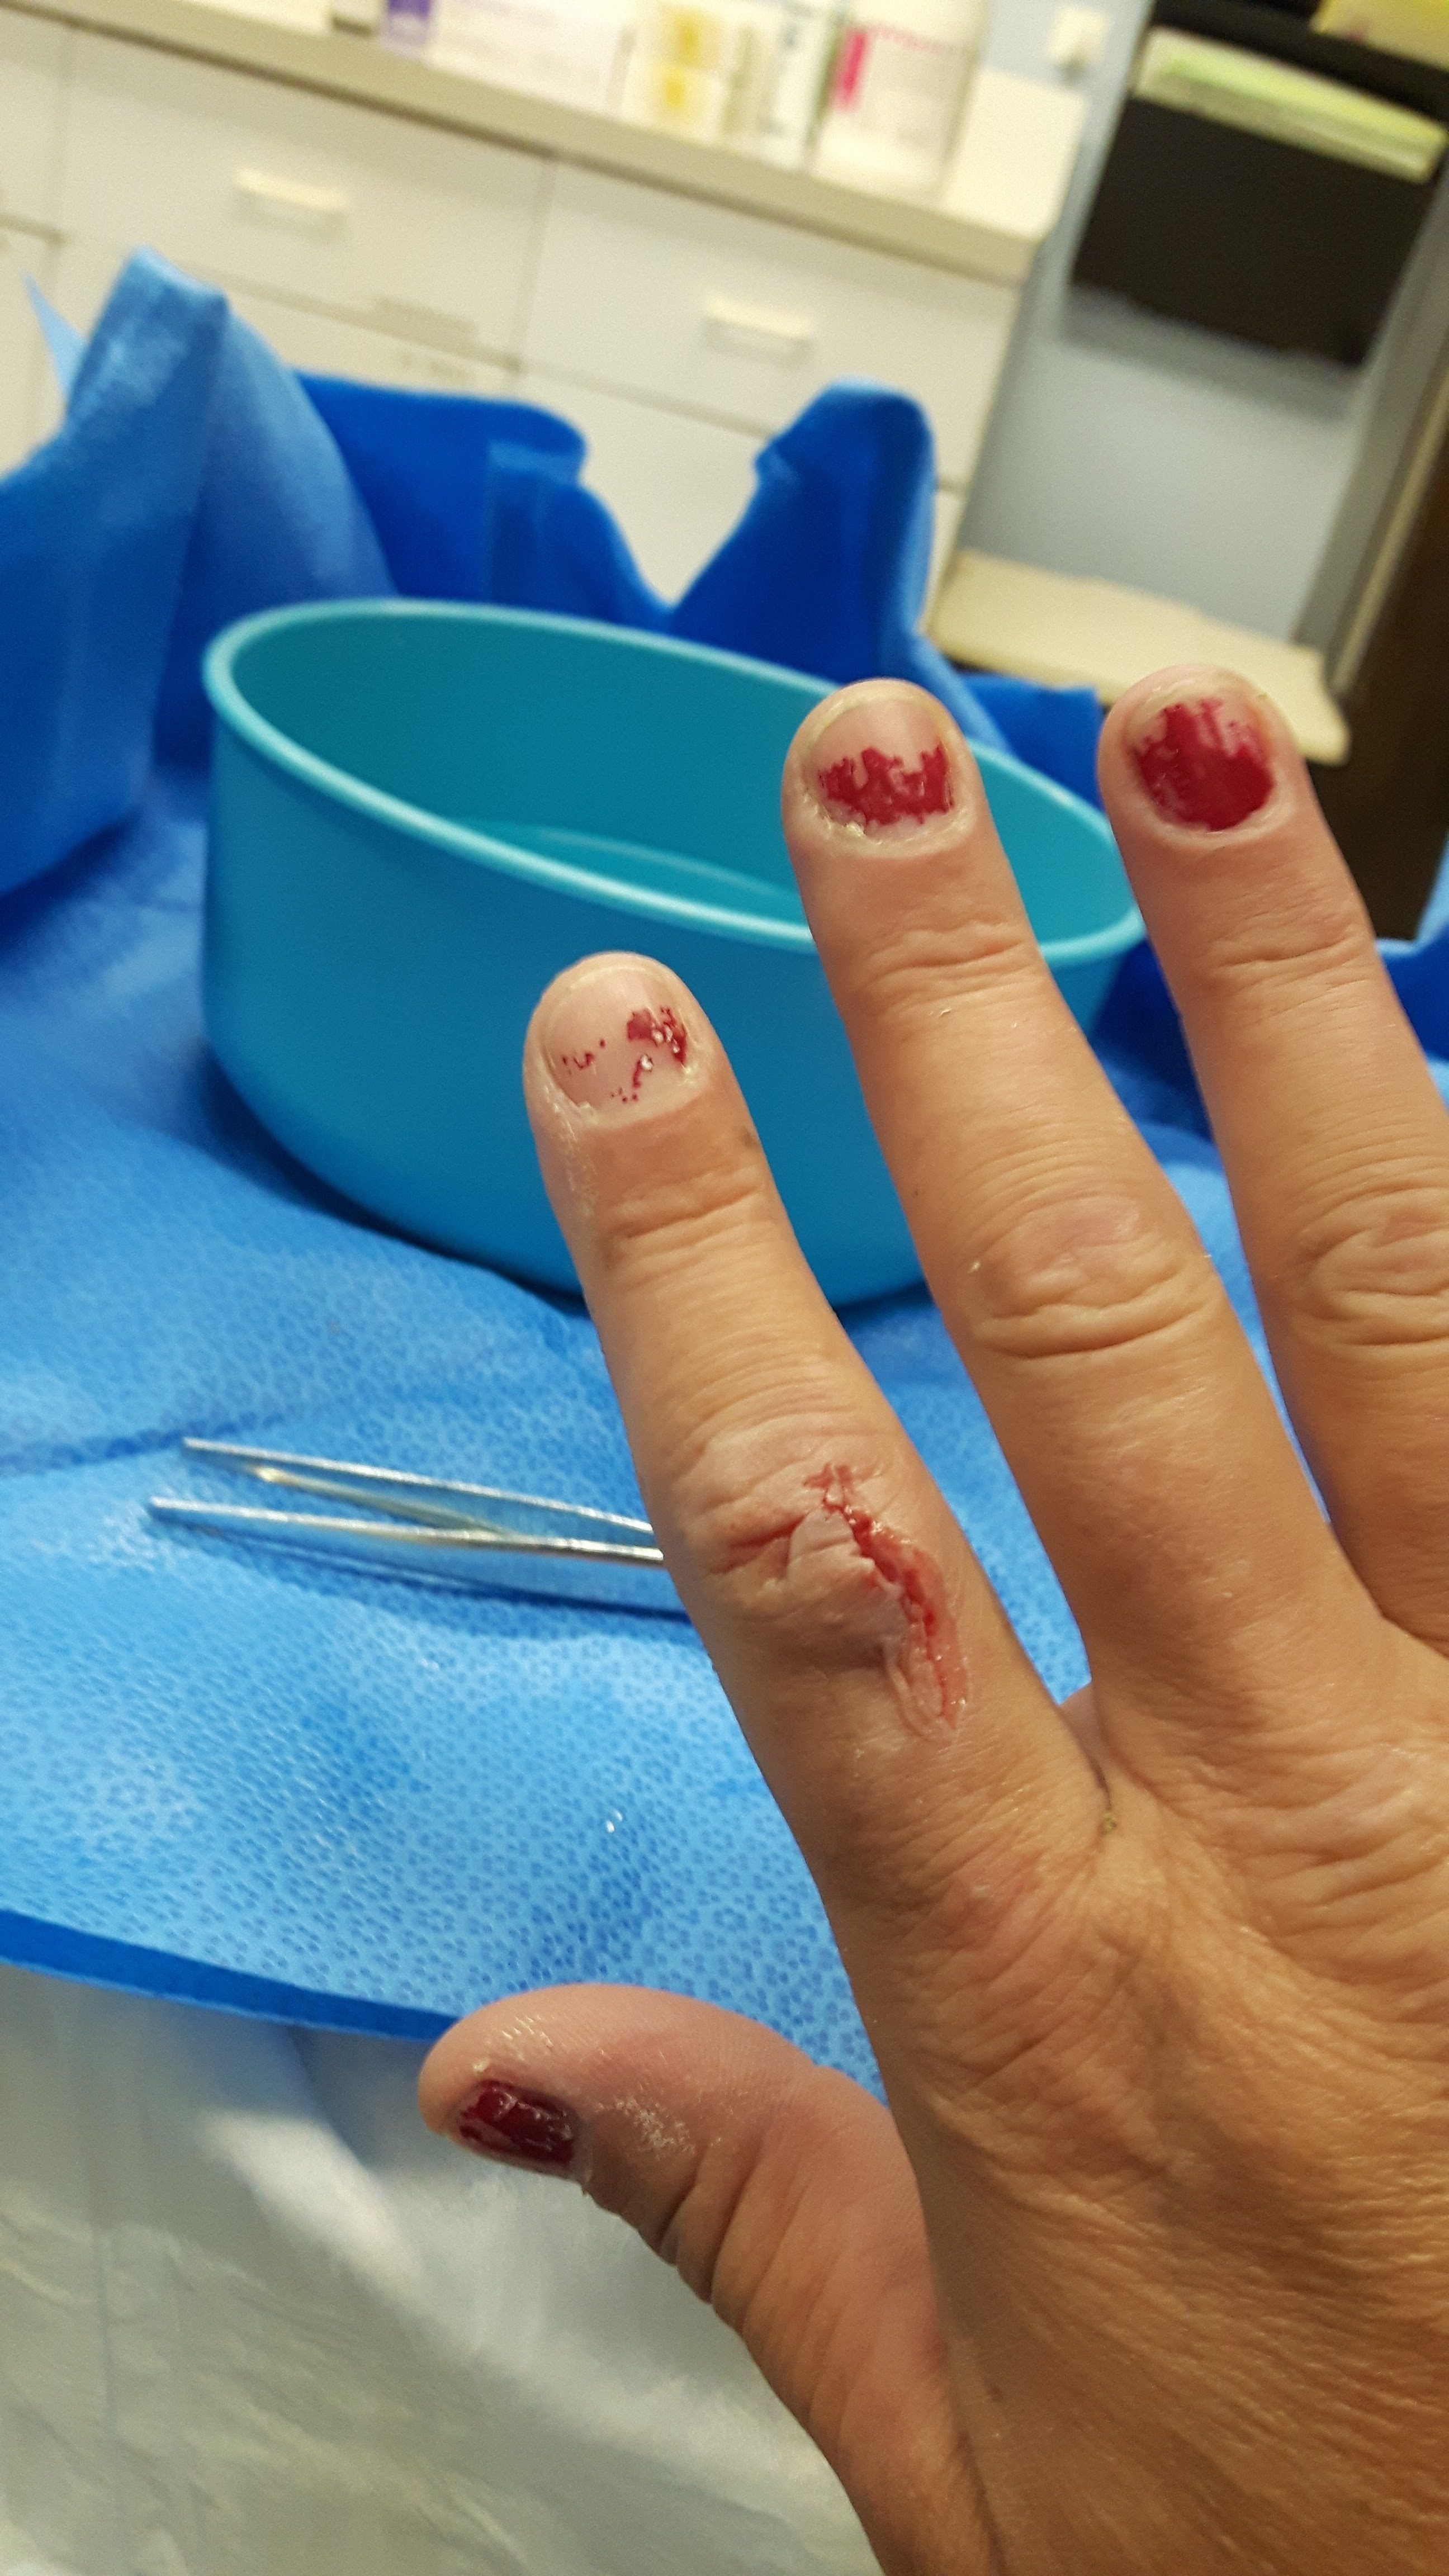 top 1 034 complaints and reviews about mcdonalds i got a cut on the top of my index finger that required 4 stitches and severed nerves from a sundae cup i was offered 100 and food coupons